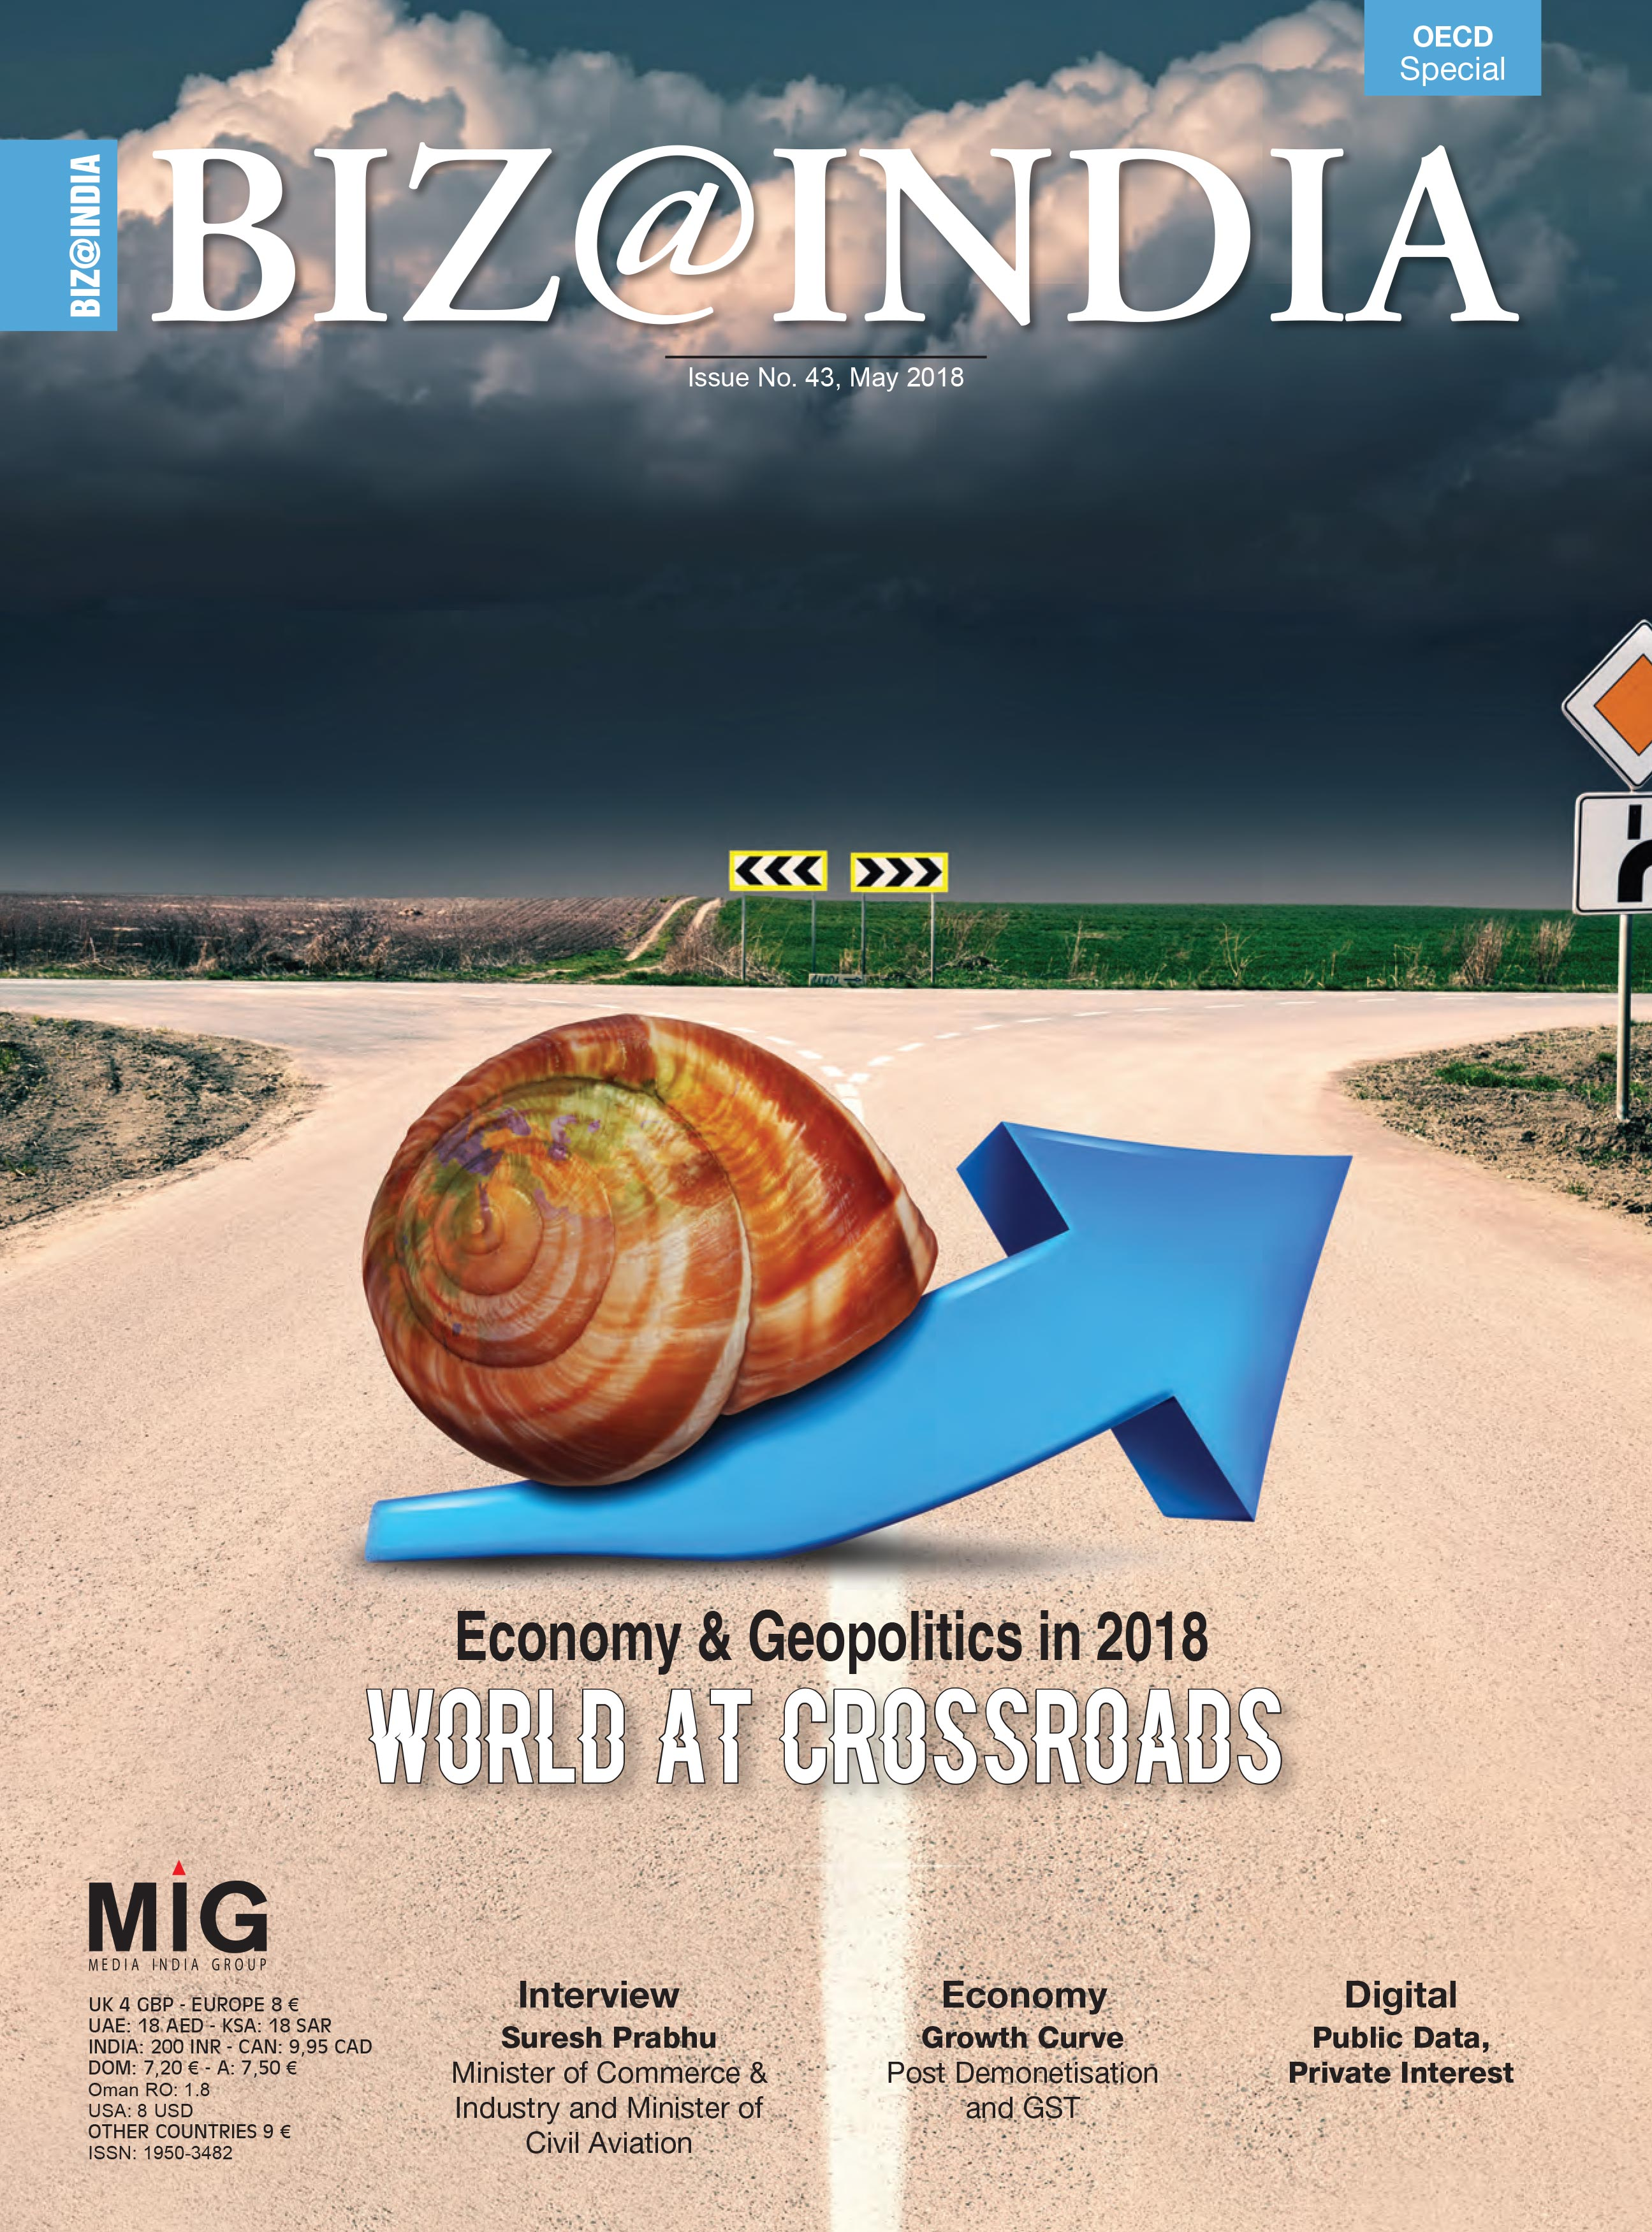 bizindia-oecd-special_cover